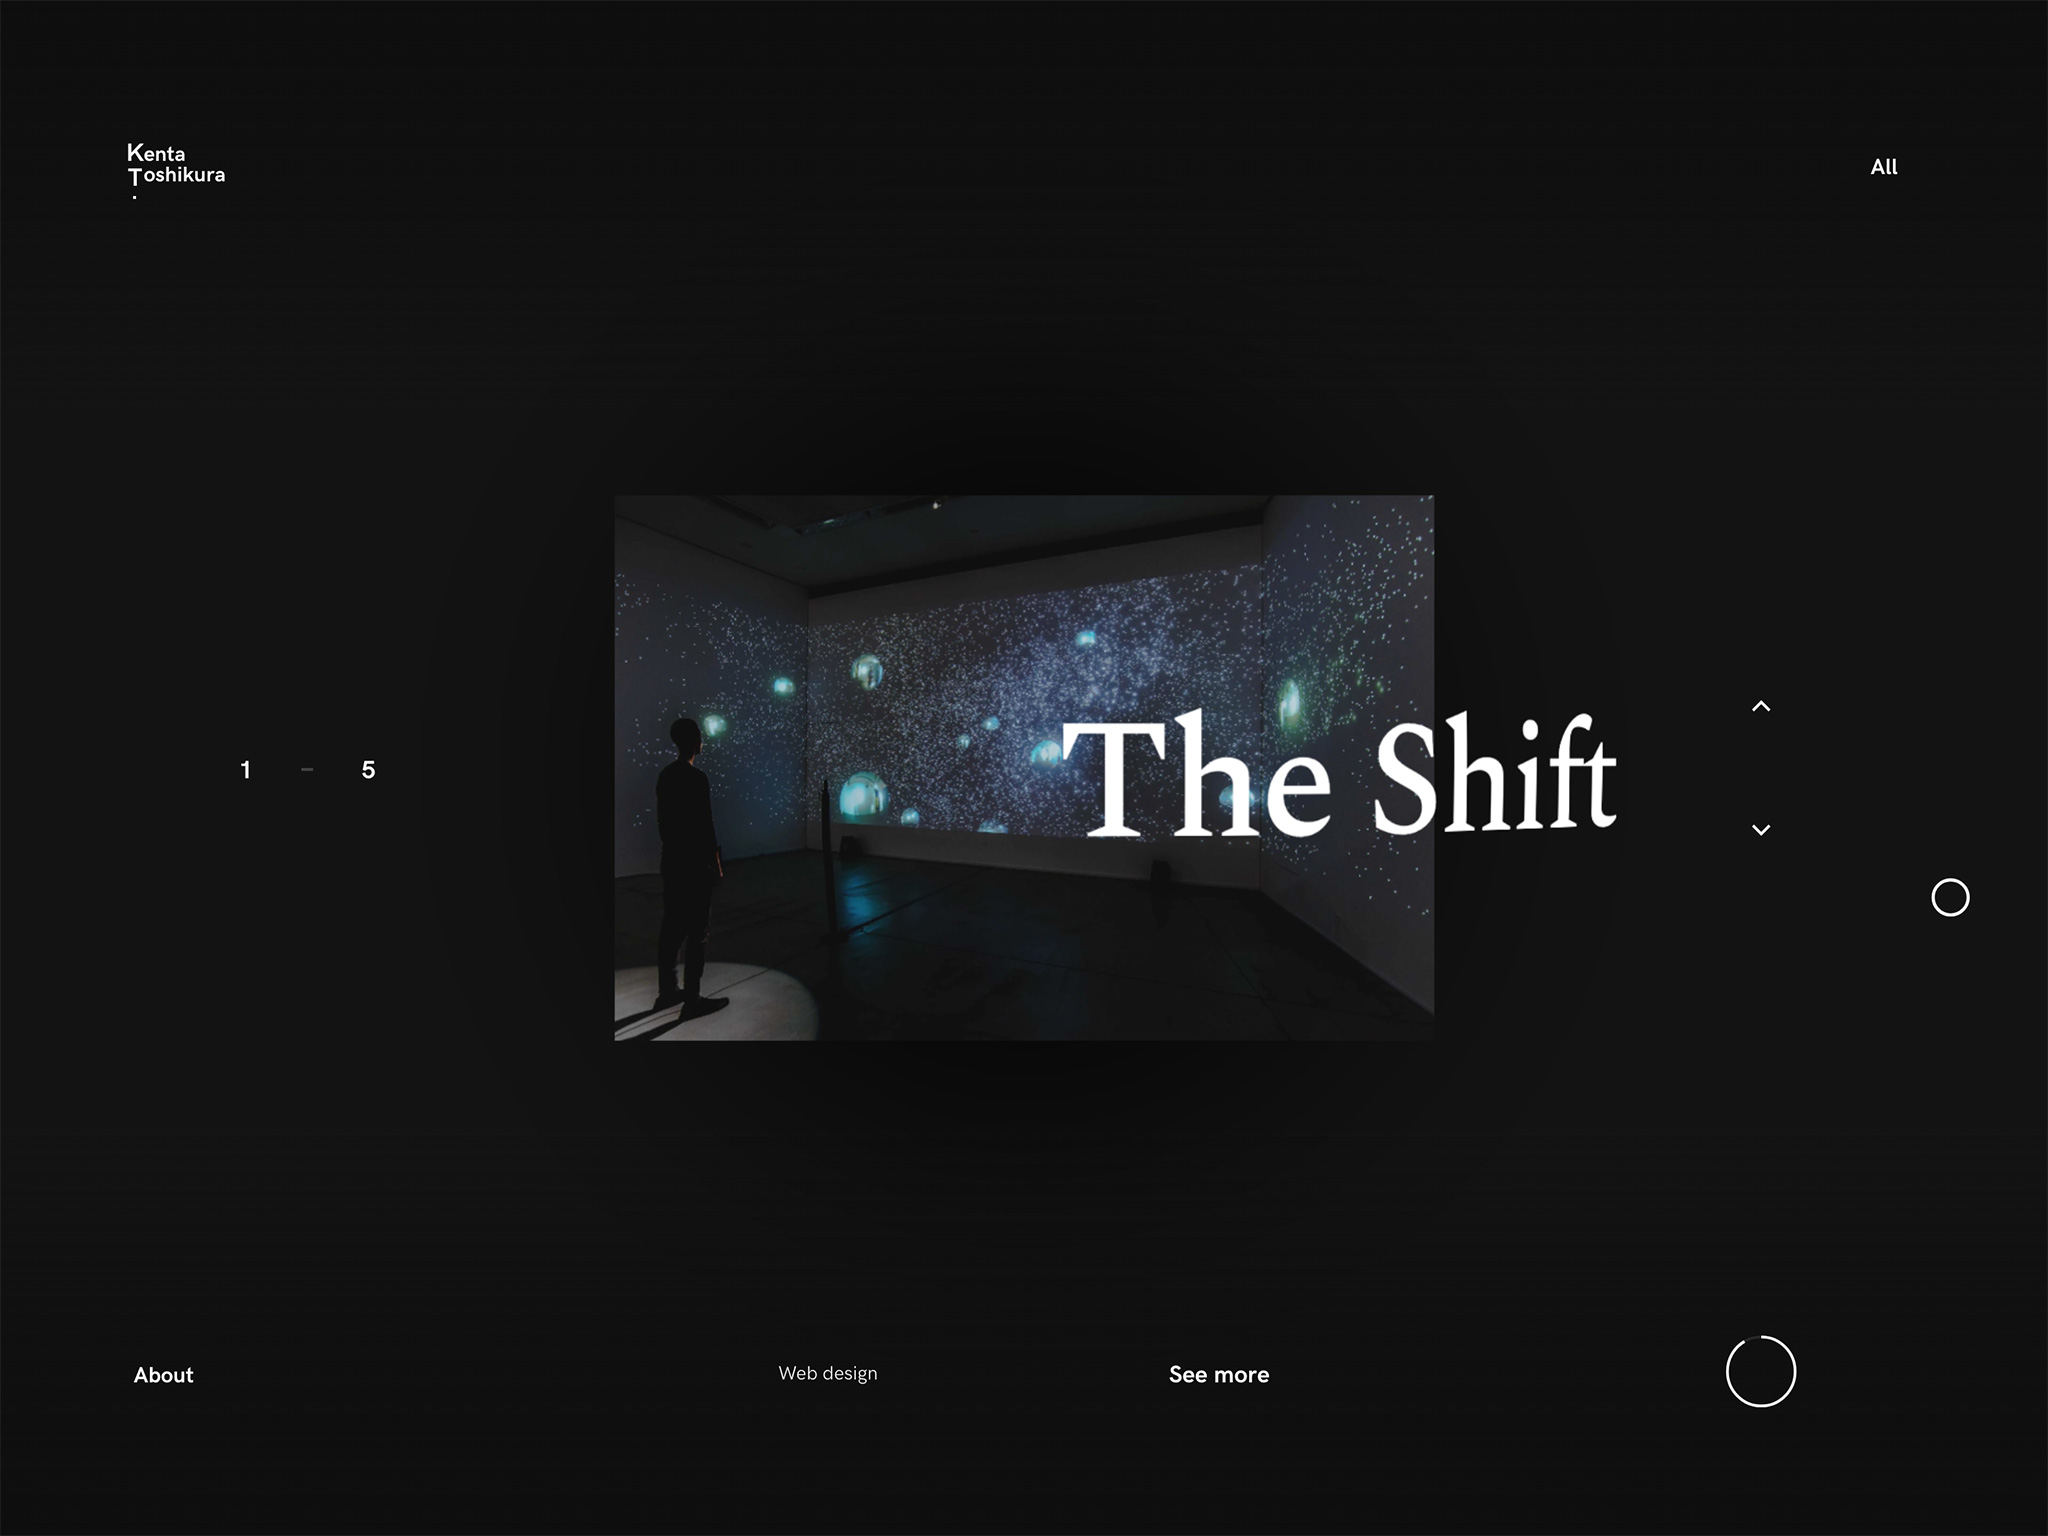 Kenta Toshikura | Web design & Development